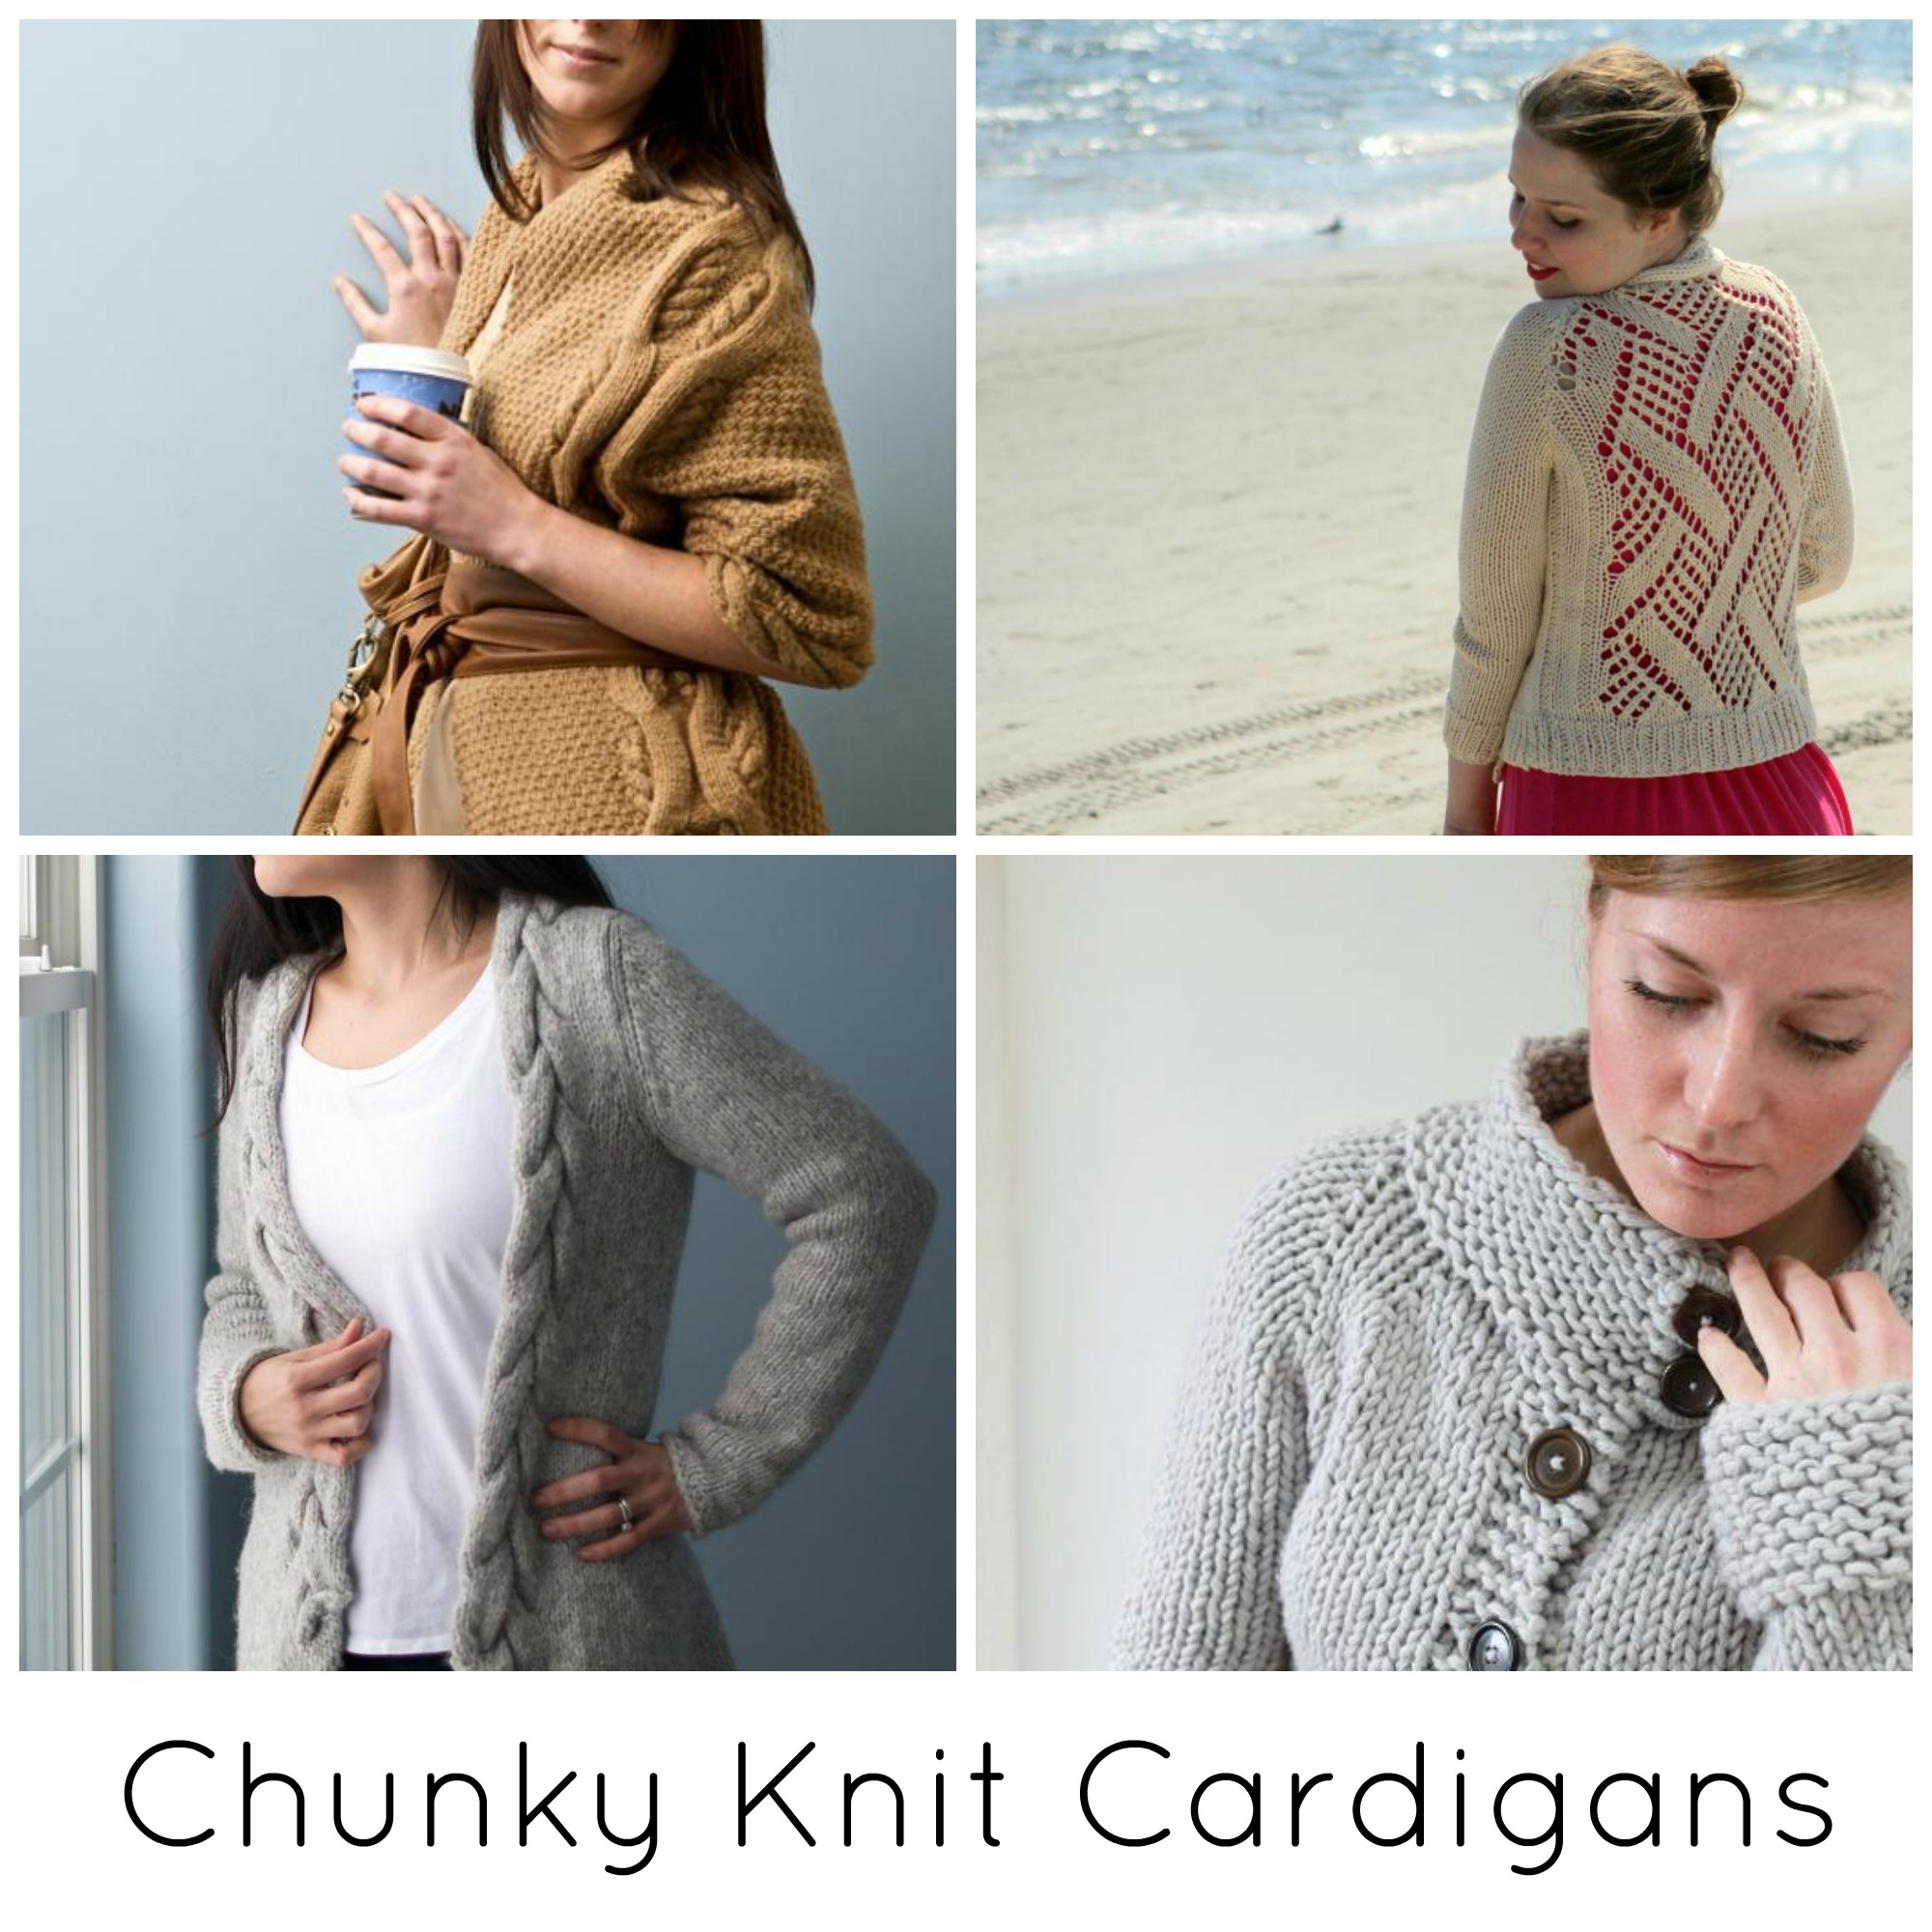 Free Knitted Cardigan Patterns The Coziest Chunky Knit Cardigan Patterns Ever